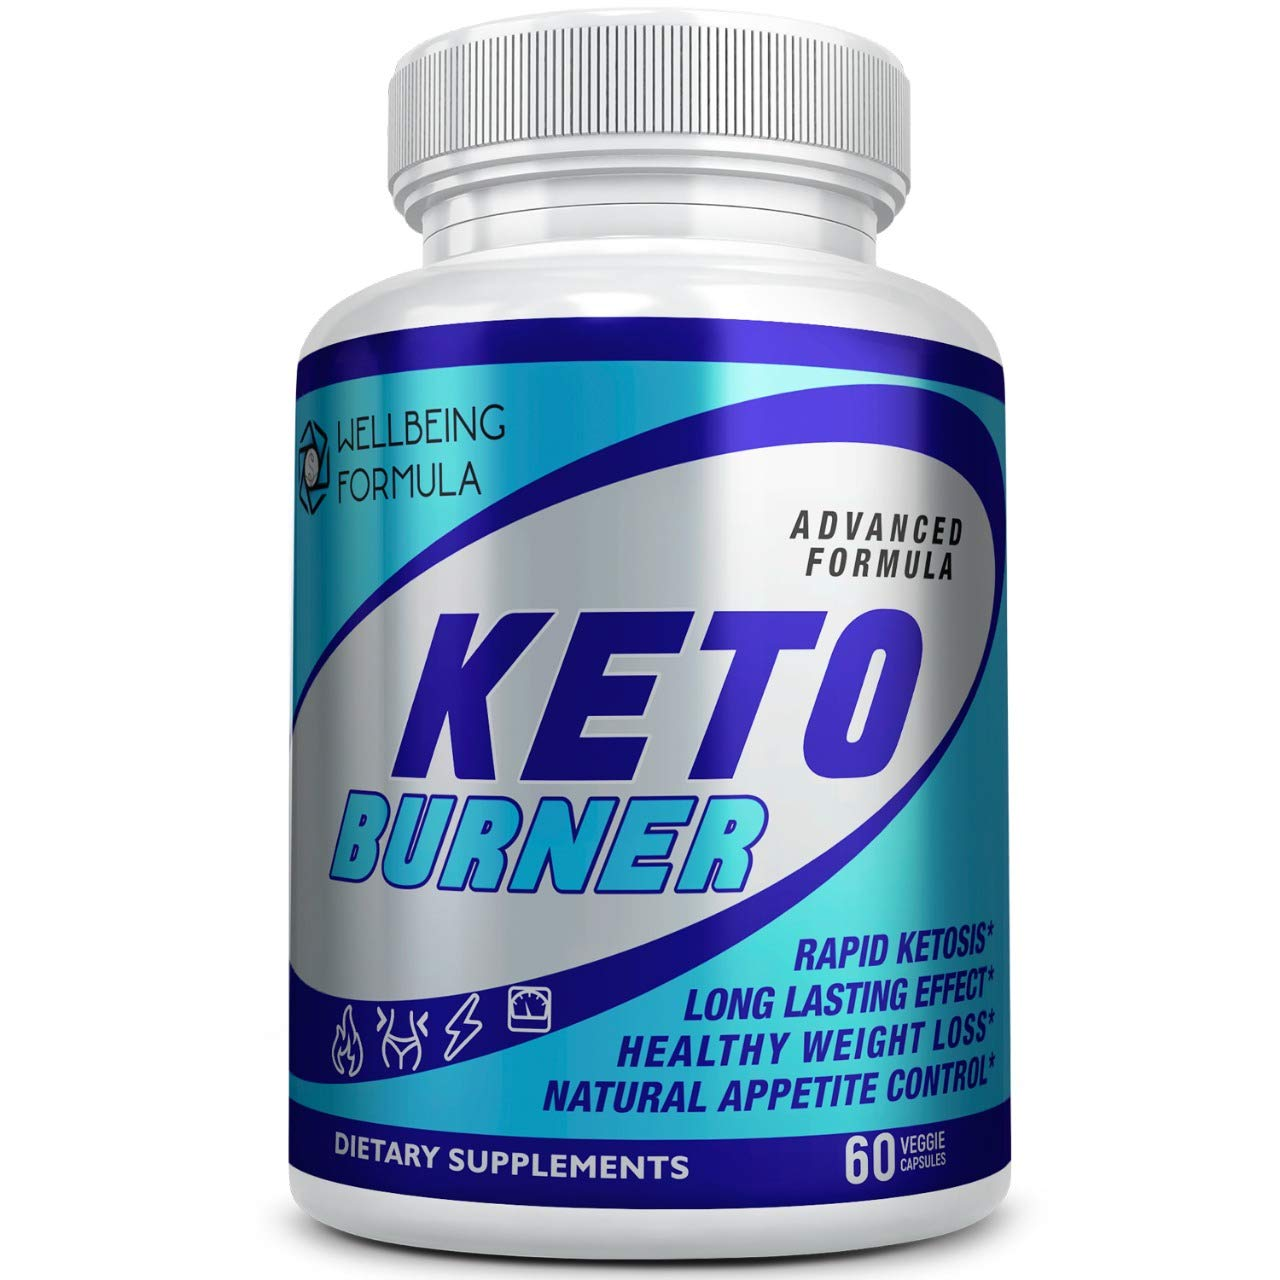 Keto Diet Pills-Natural Exogenous Ketones Supplement-Weight Loss Appetite Suppressant Keto Diet Pills That Work Fast for Women and Men-Perfect Keto Fat Burner-Metabolism Booster for Fast Weight Loss by Wellbeing Formula